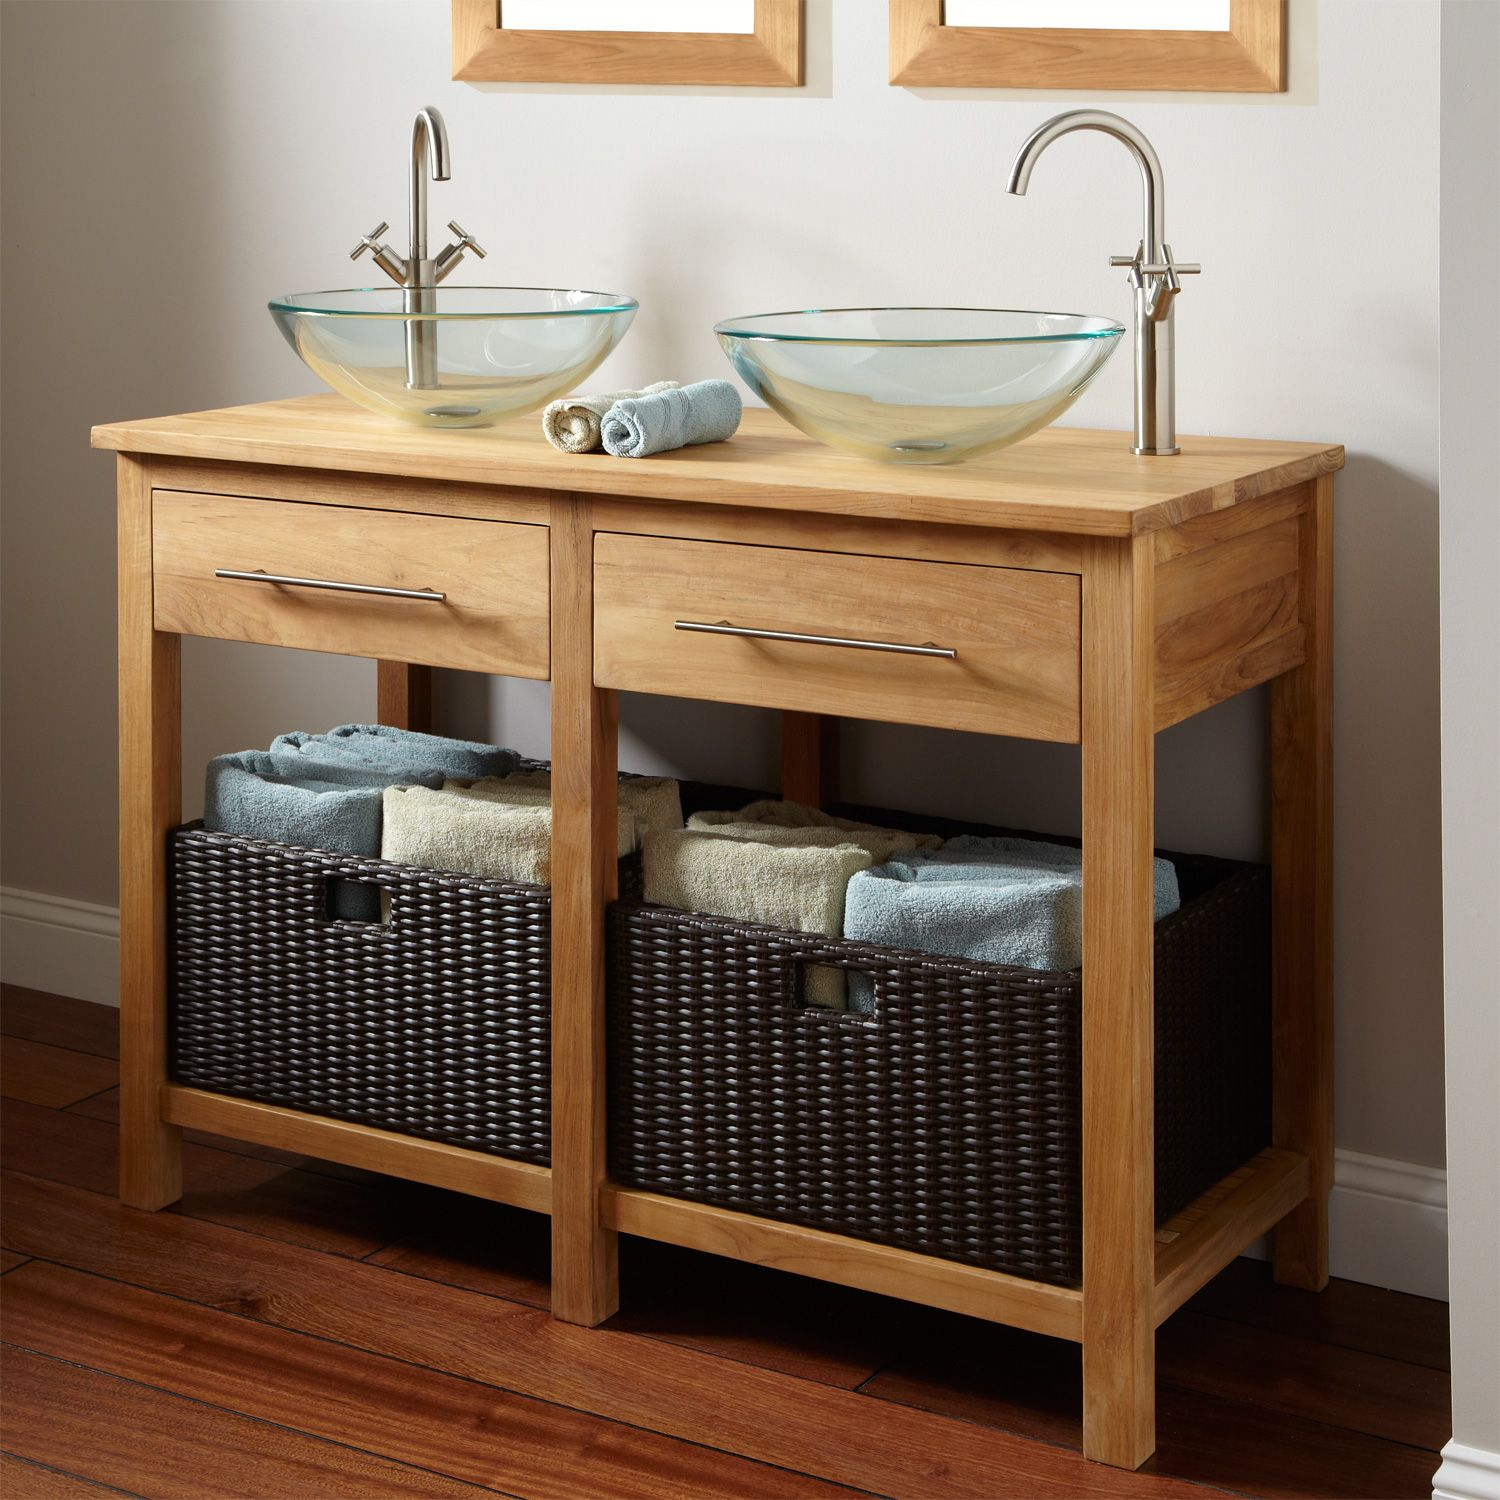 Diy Bathroom Vanity Save Money By Making Your Own With Images